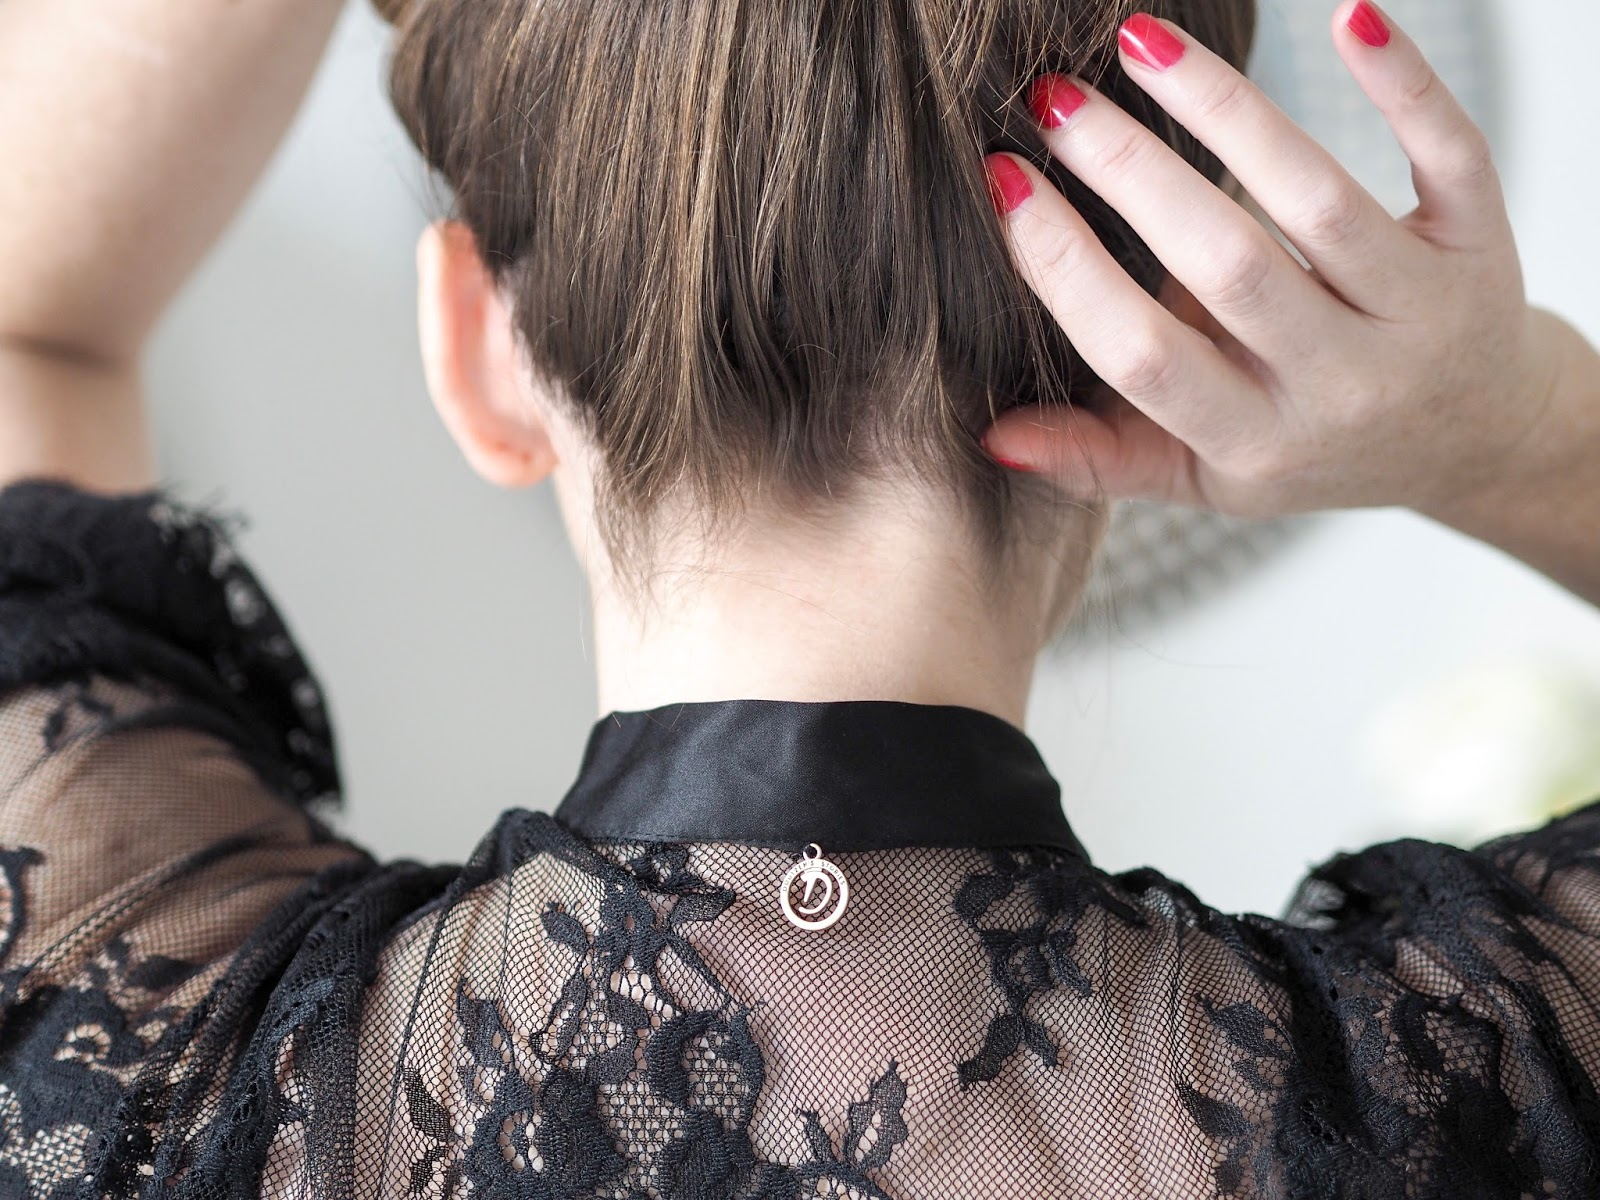 Feel sexy in your forties with a Black lace kimono by Doutzen at Hunkemoller \ lingerie \ underwear \ Priceless Life of Mine \ Over 40 lifestyle blog